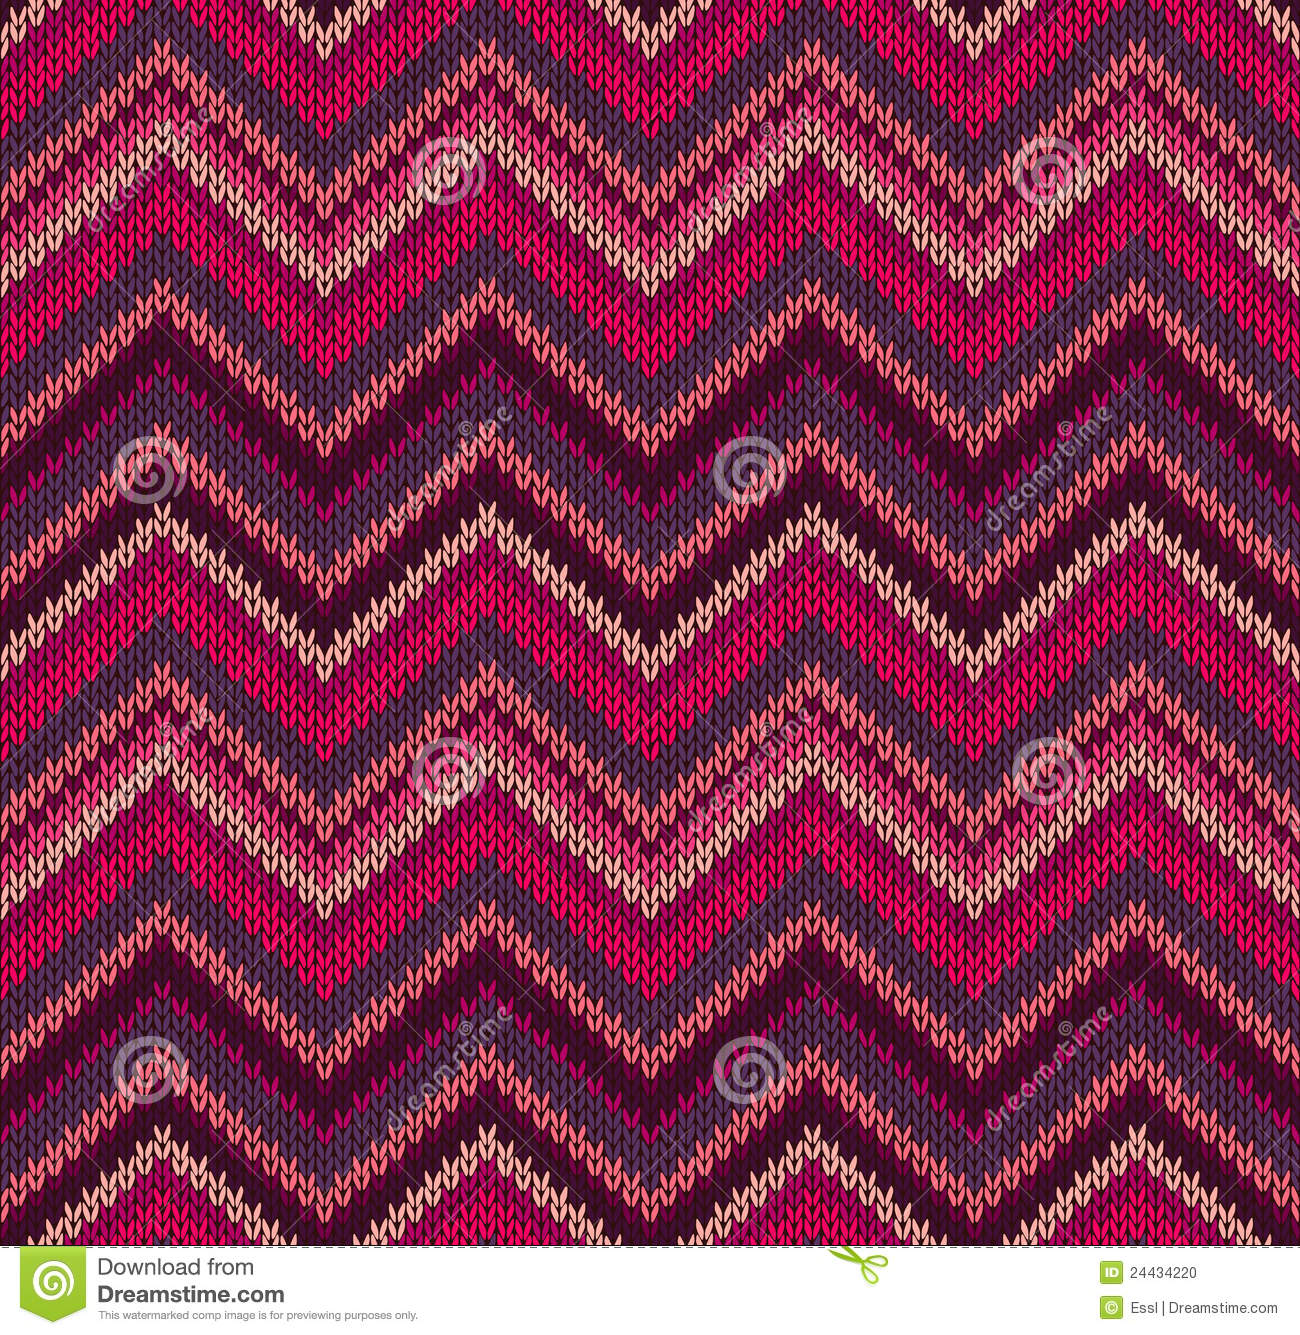 Knitting Patterns For Texture : Red Pink Knit Texture Pattern Stock Photo - Image: 24434220